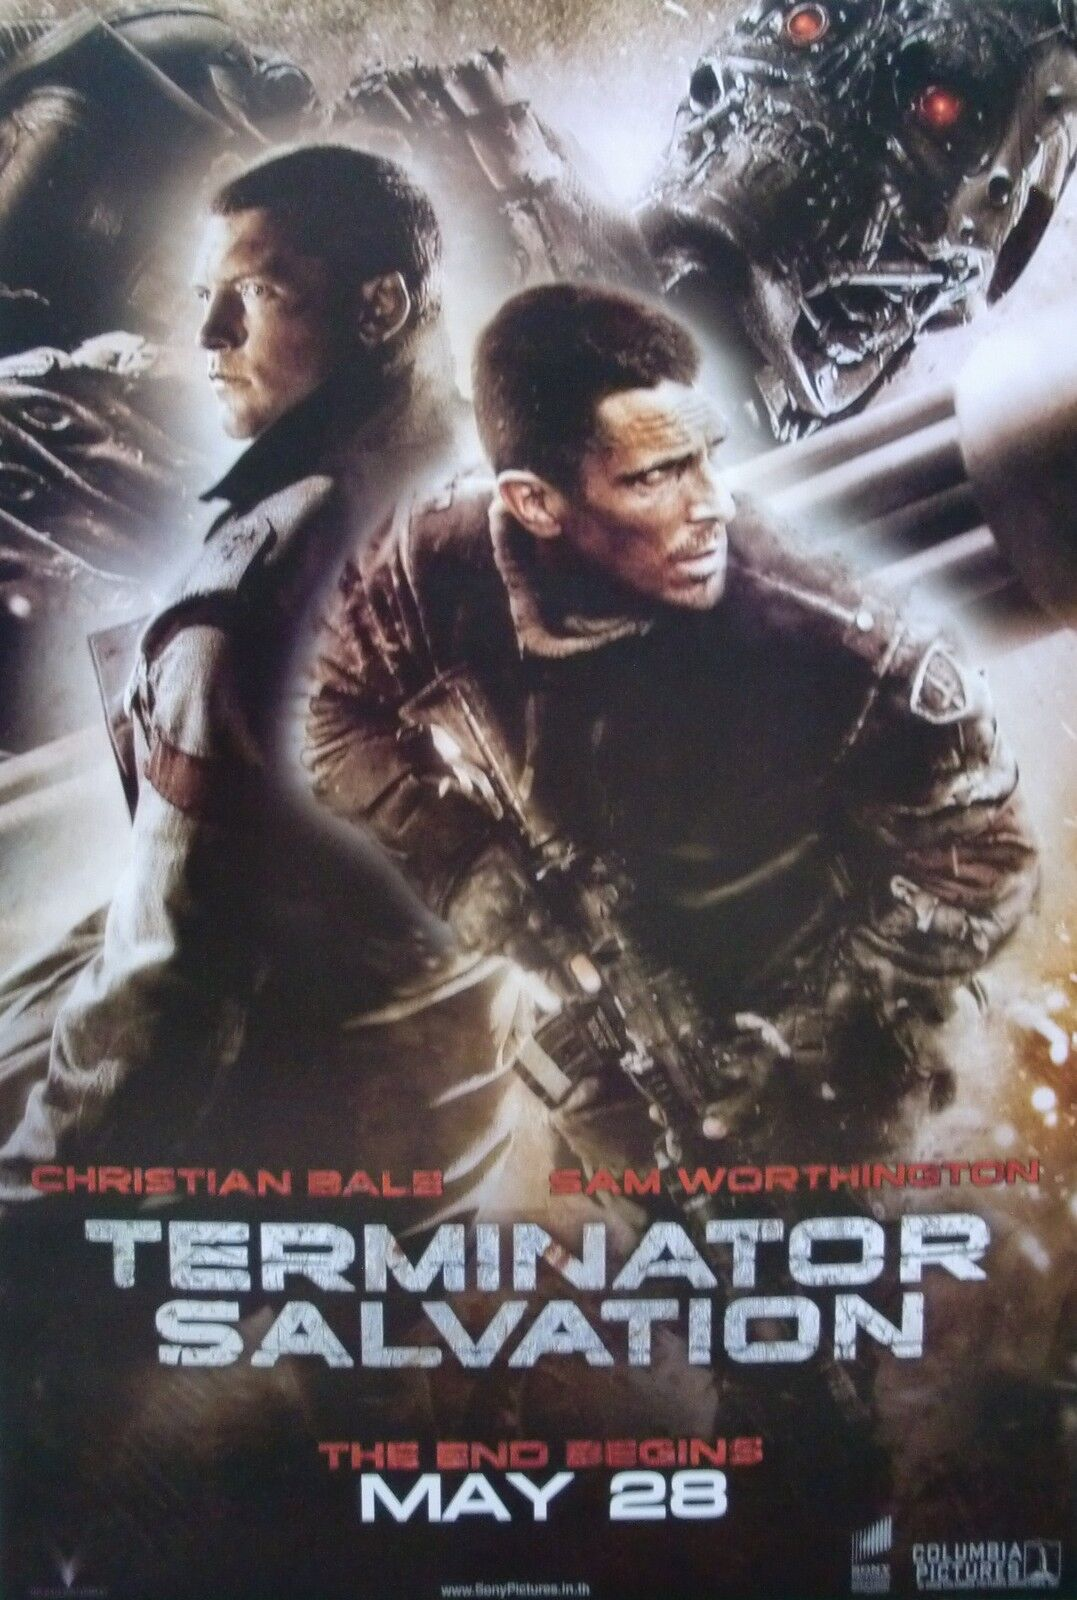 Terminator Salvation Movie Poster - 234.3KB